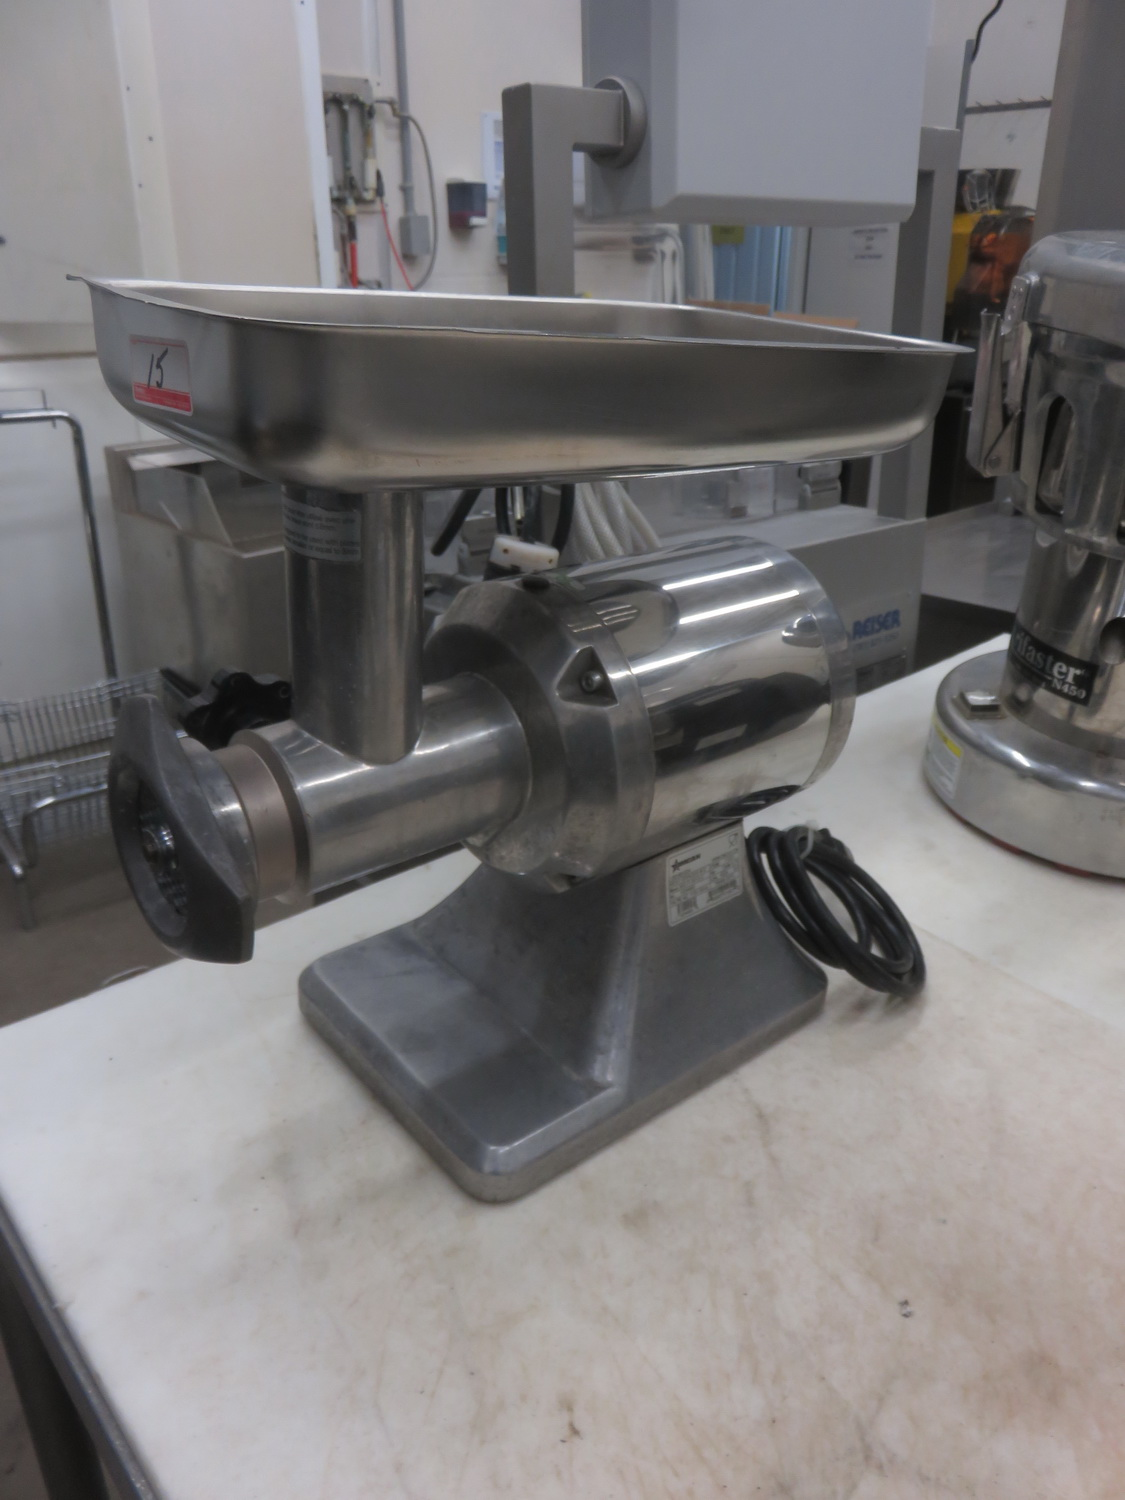 OMCAN MG-IT-0012-C TABLE TOP MEAT GRINDER W/ 1HP MOTOR - Image 2 of 2